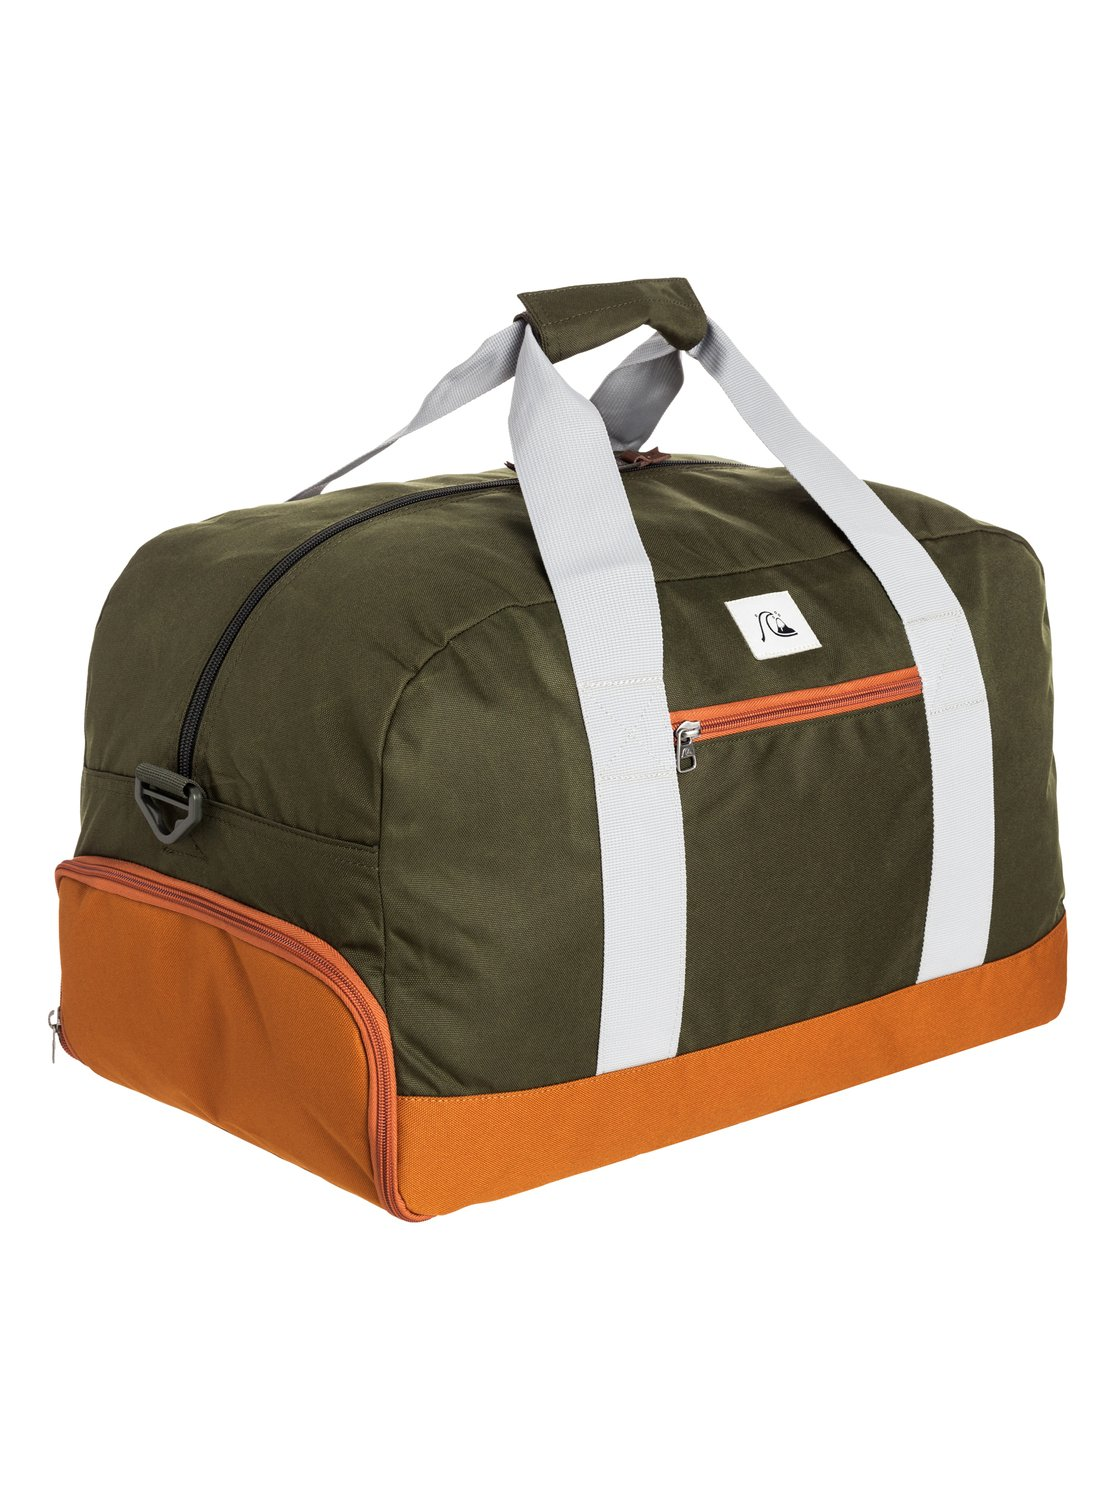 3f98ed5f6f32 1 Medium Shelter Modern Original - Duffle Bag EQYBL03056 Quiksilver